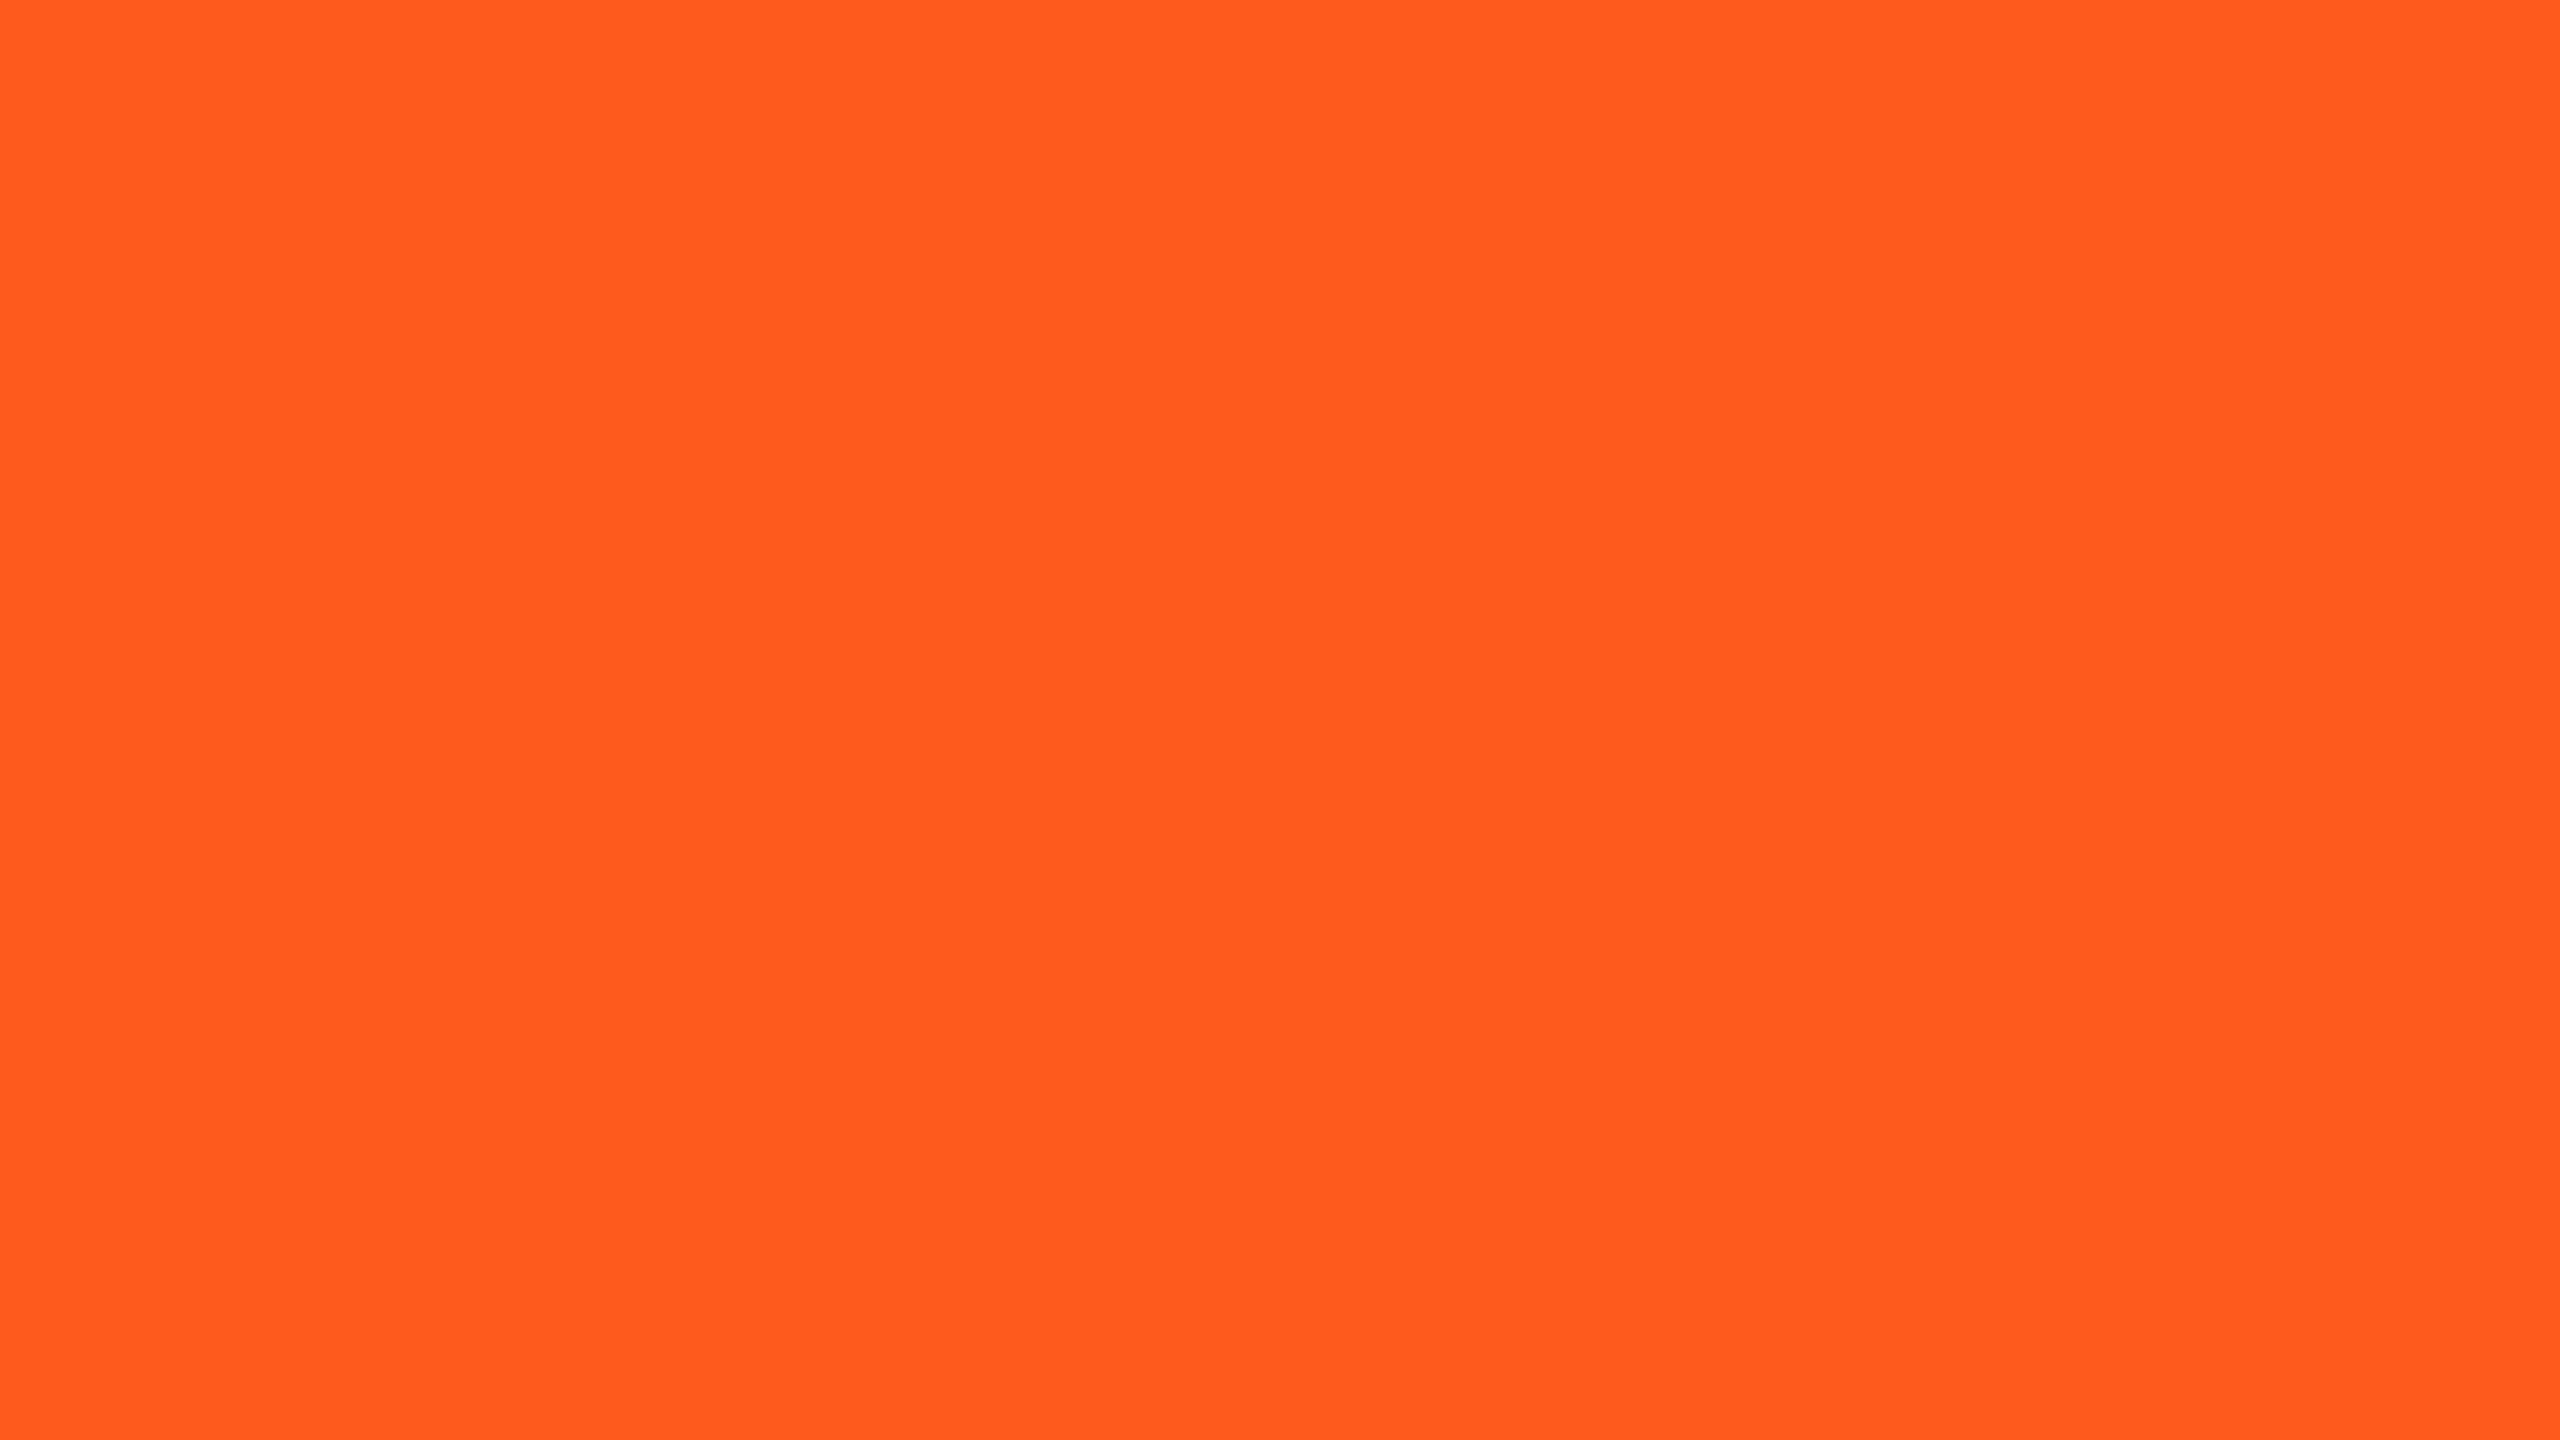 2560x1440 Giants Orange Solid Color Background